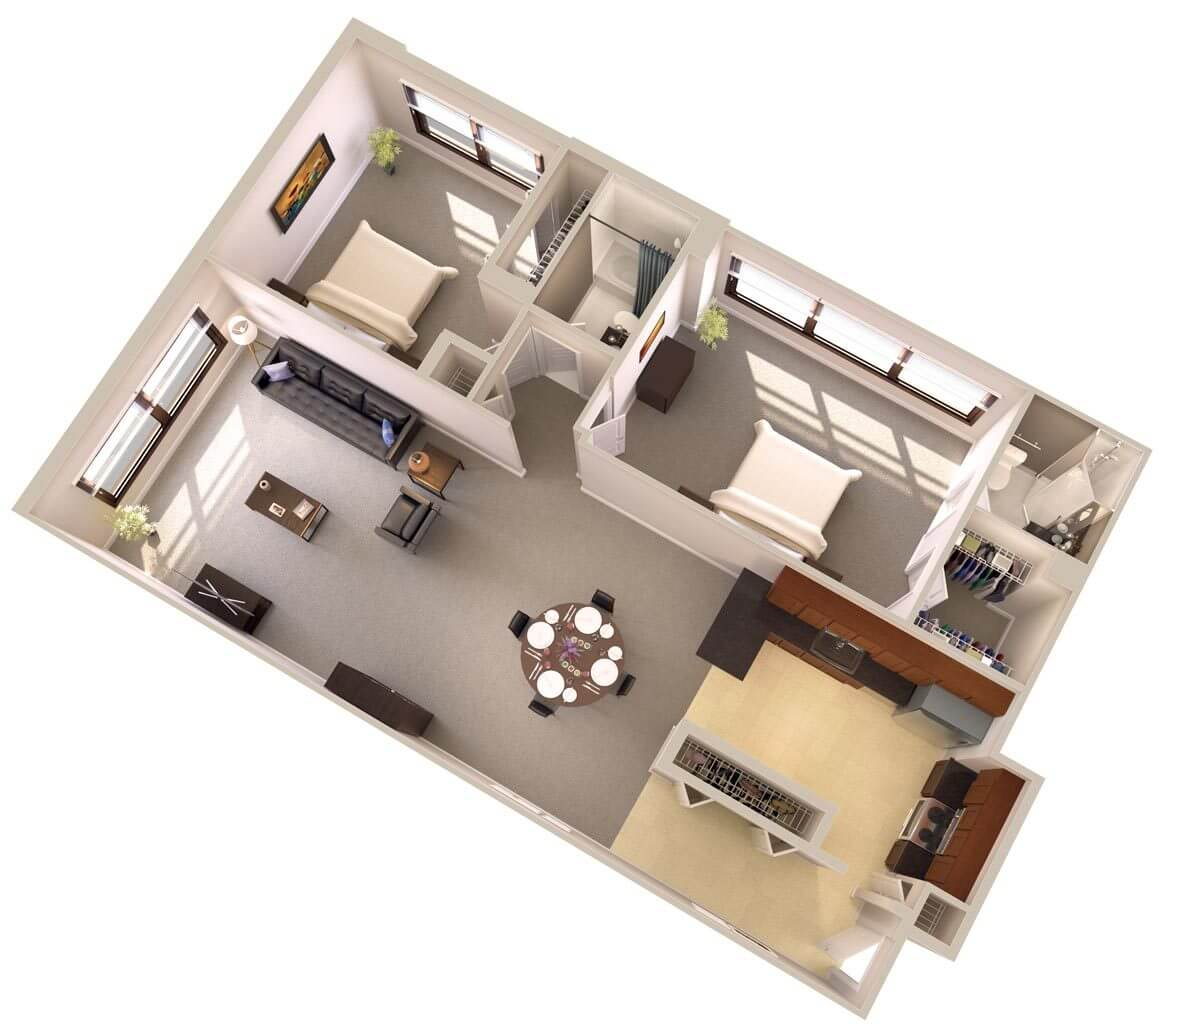 3 Bedroom Apartments With Utilities Included Two Bedroom Apartments Near Metro Topaz House